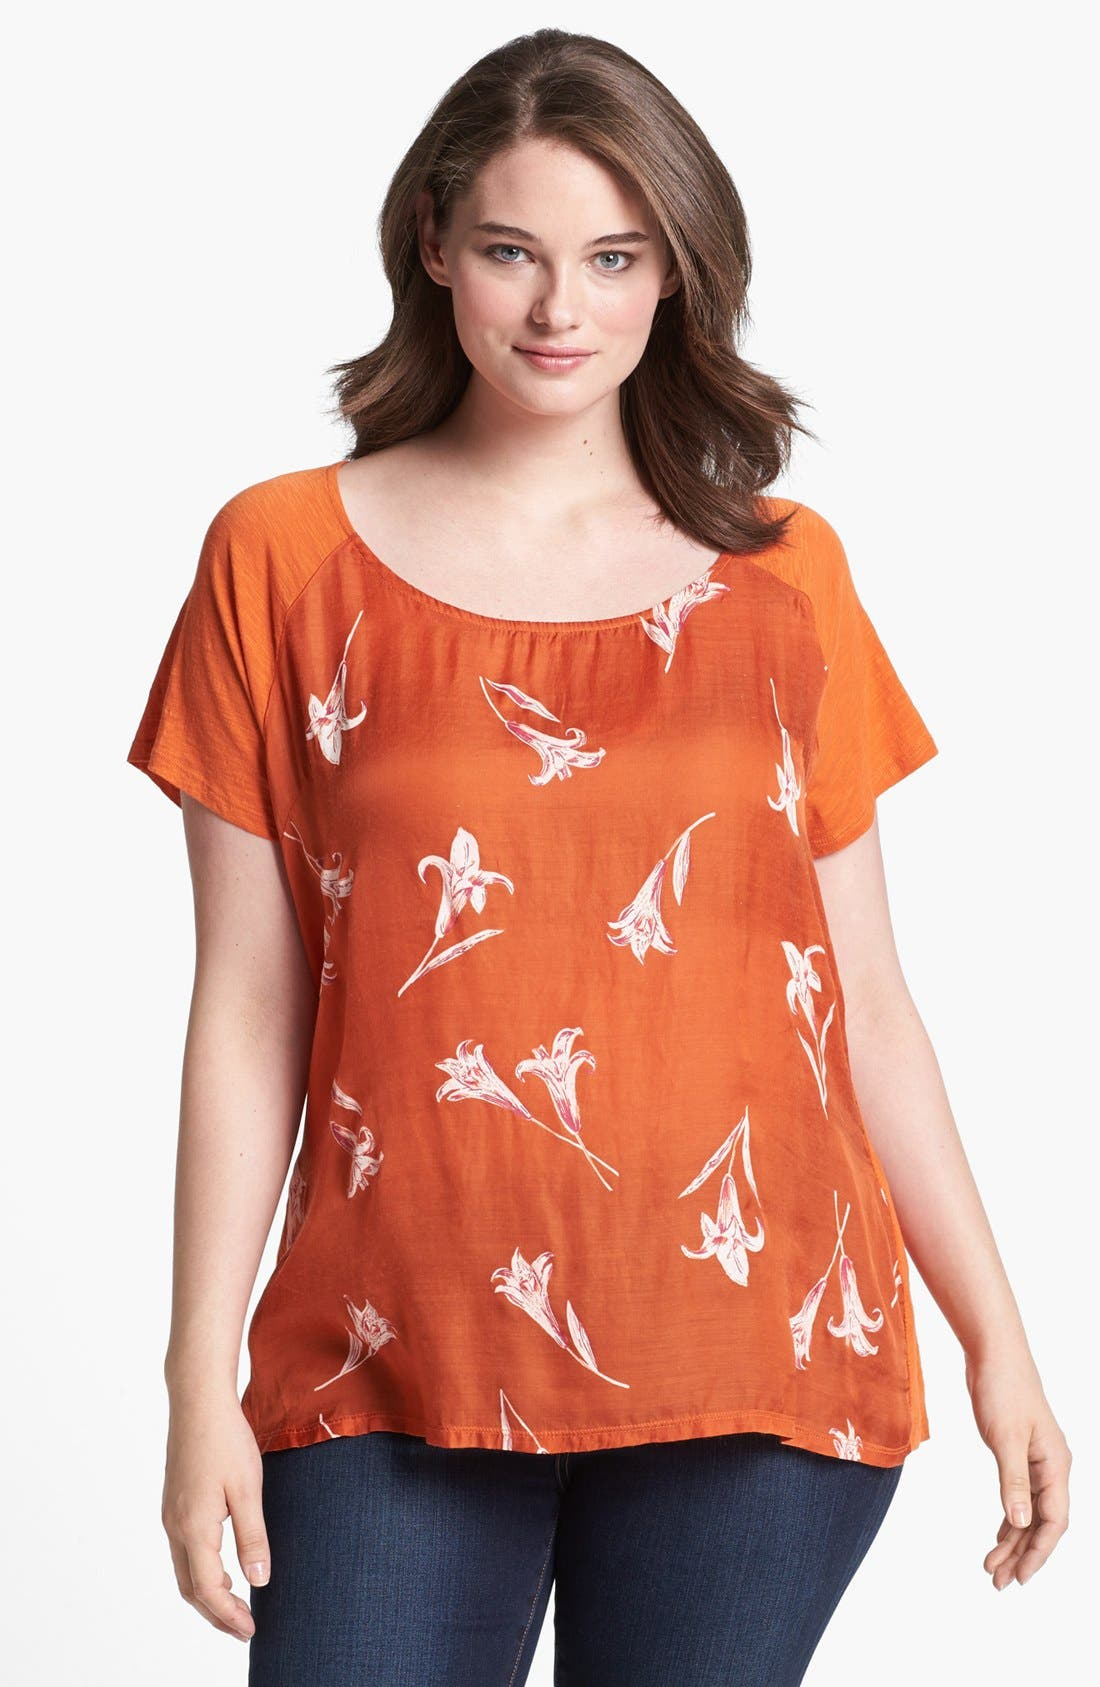 Alternate Image 1 Selected - Lucky Brand 'Lily' Woven Front Tee (Plus Size)